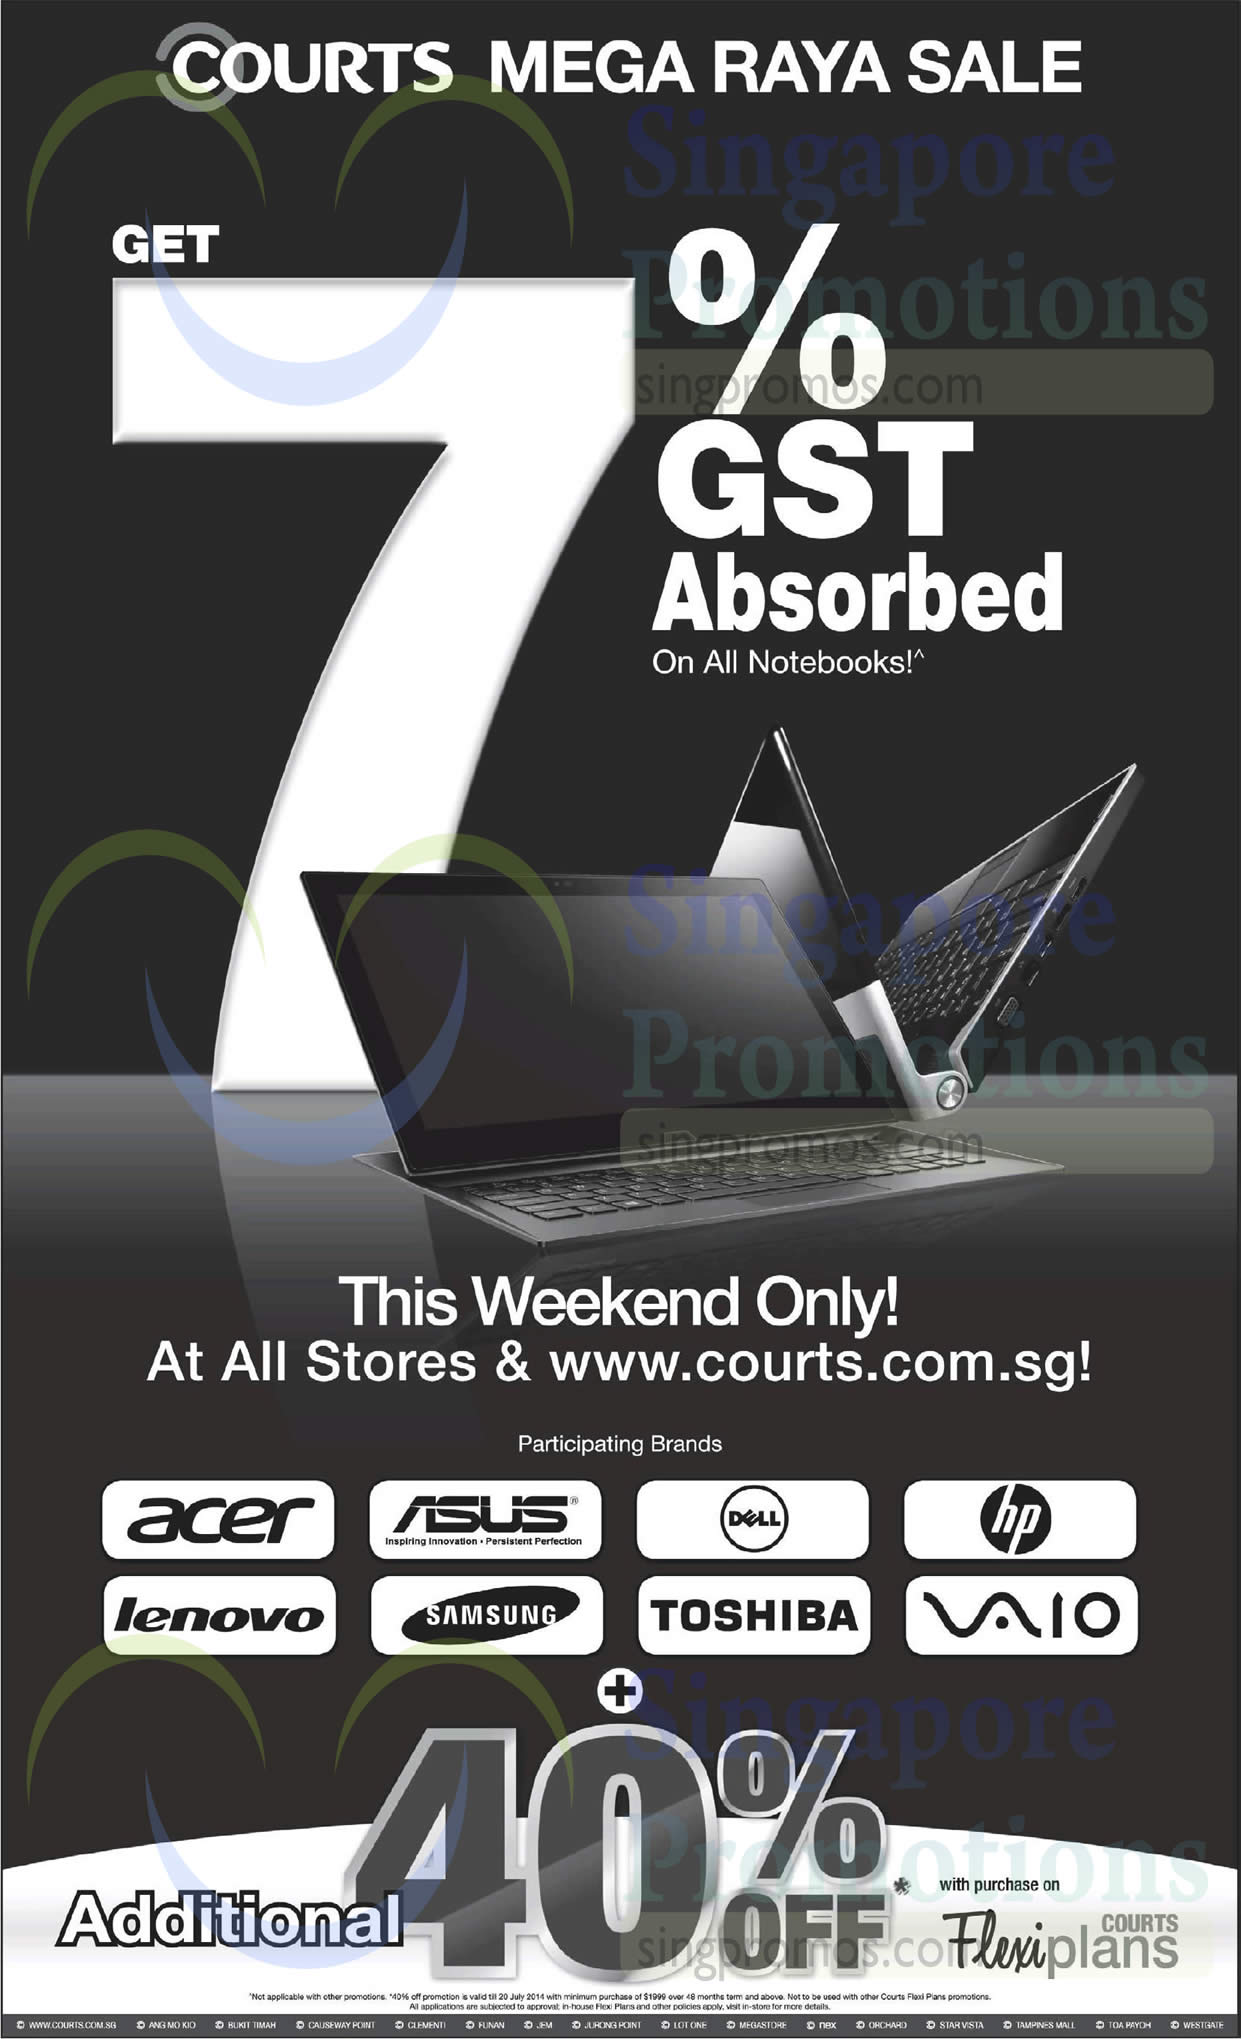 GST 7 Percent Absorbed On All Notebooks